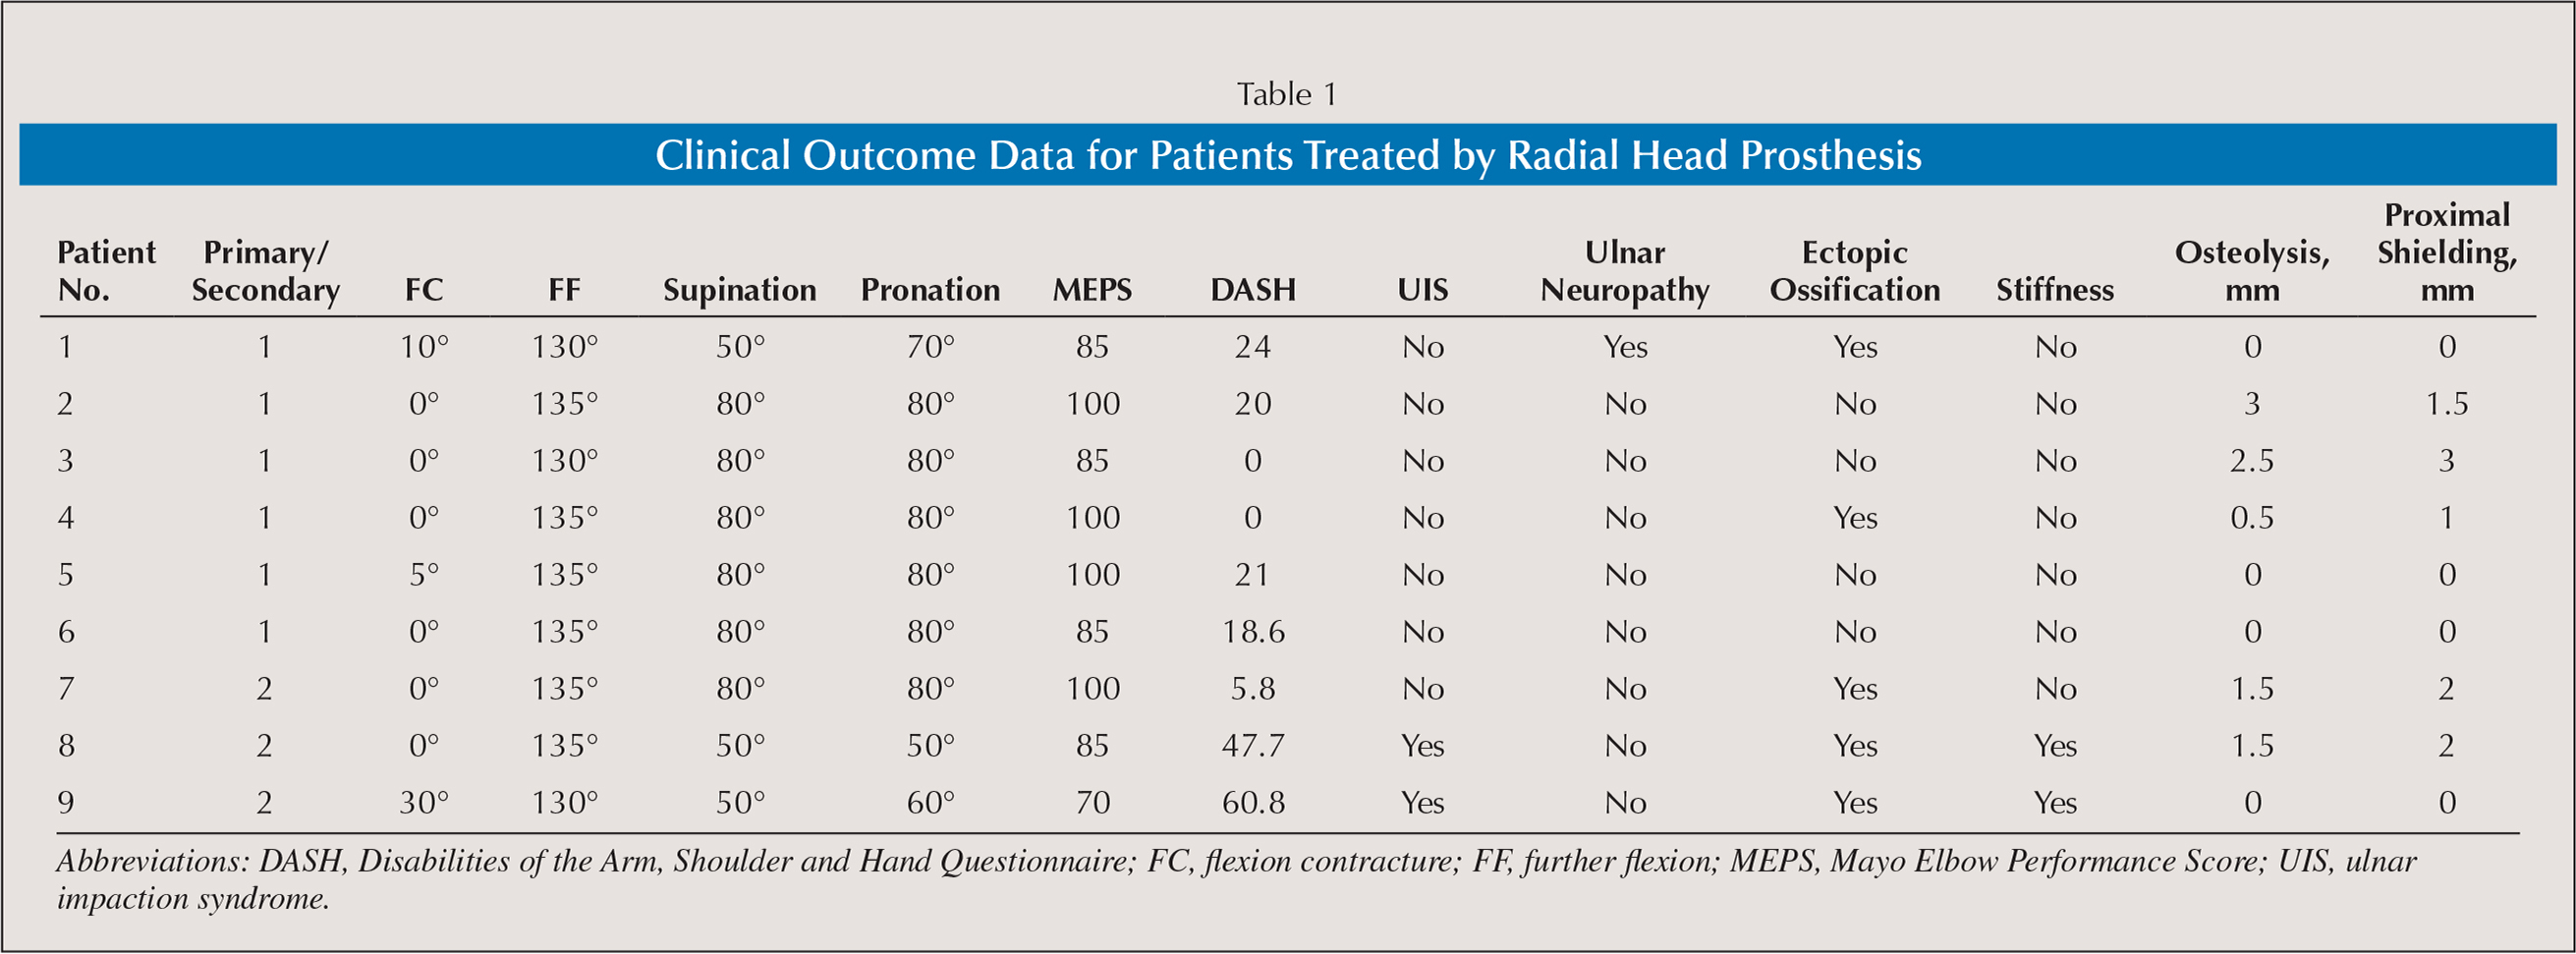 Clinical Outcome Data for Patients Treated by Radial Head Prosthesis